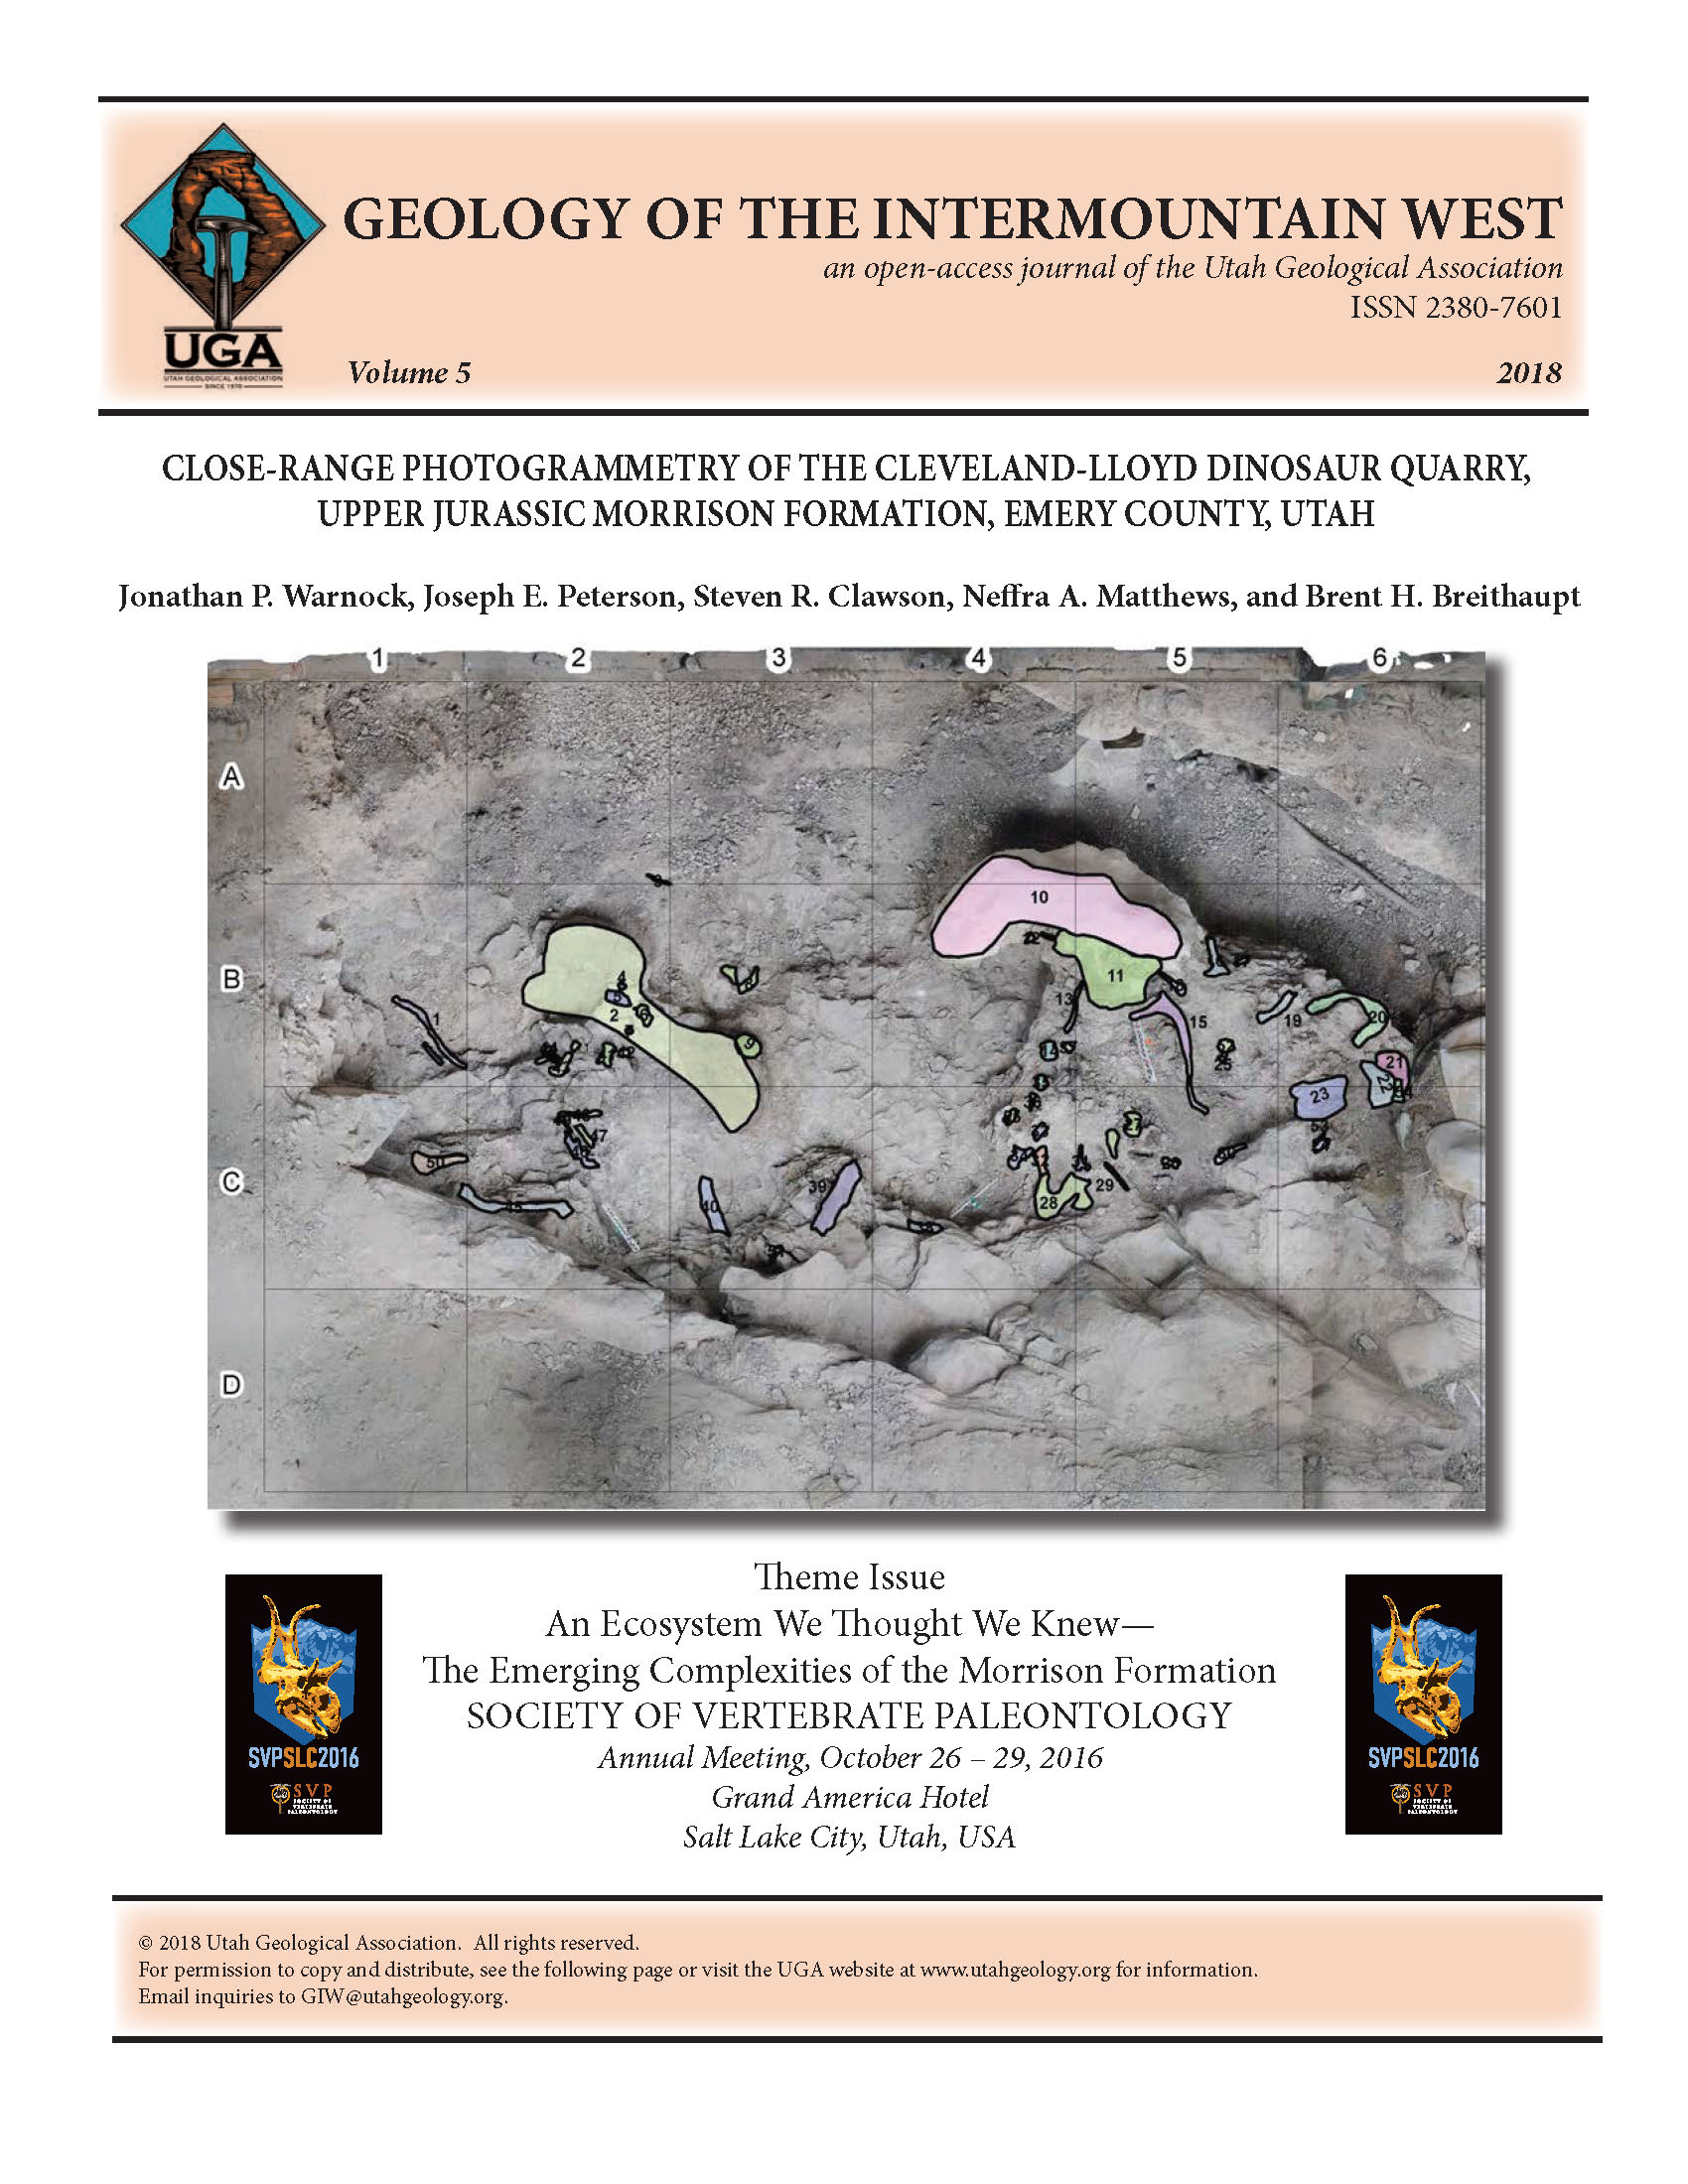 Orthomosaic map of the 2015–2017 excavations of the South Butler Building at the Cleveland-Lloyd Dinosaur Quarry produced from photogrammetry and standard grid mapping. The Cleveland-Lloyd Dinosaur Quarry is located on the San Rafael Swell, Emery County, Utah.